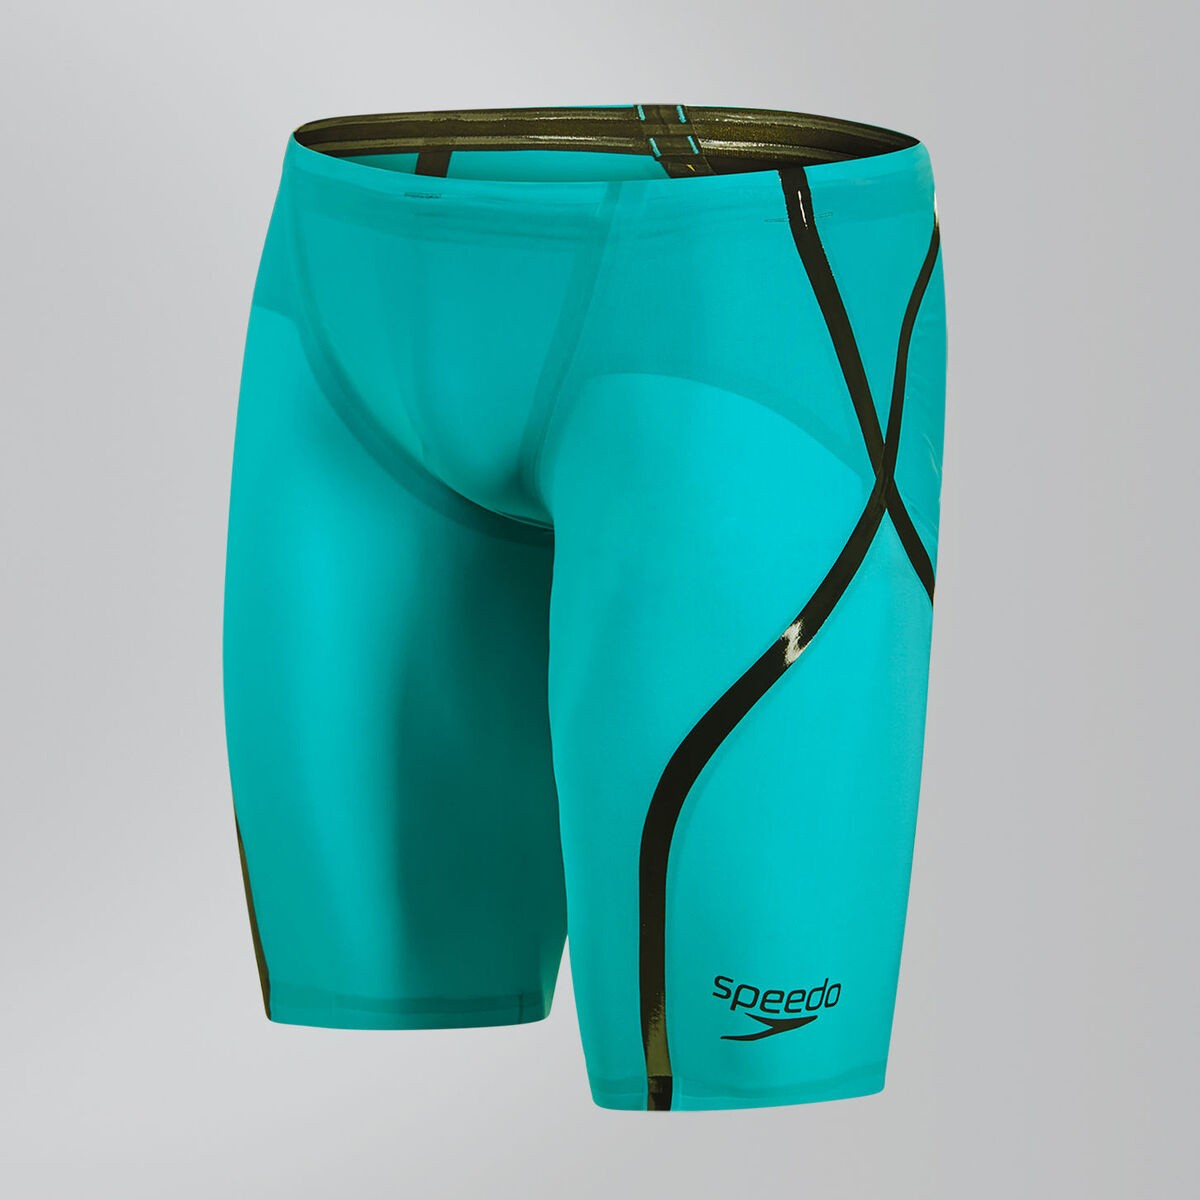 Speedo Wedstrijdjammer LZR Racer X high waist green/black